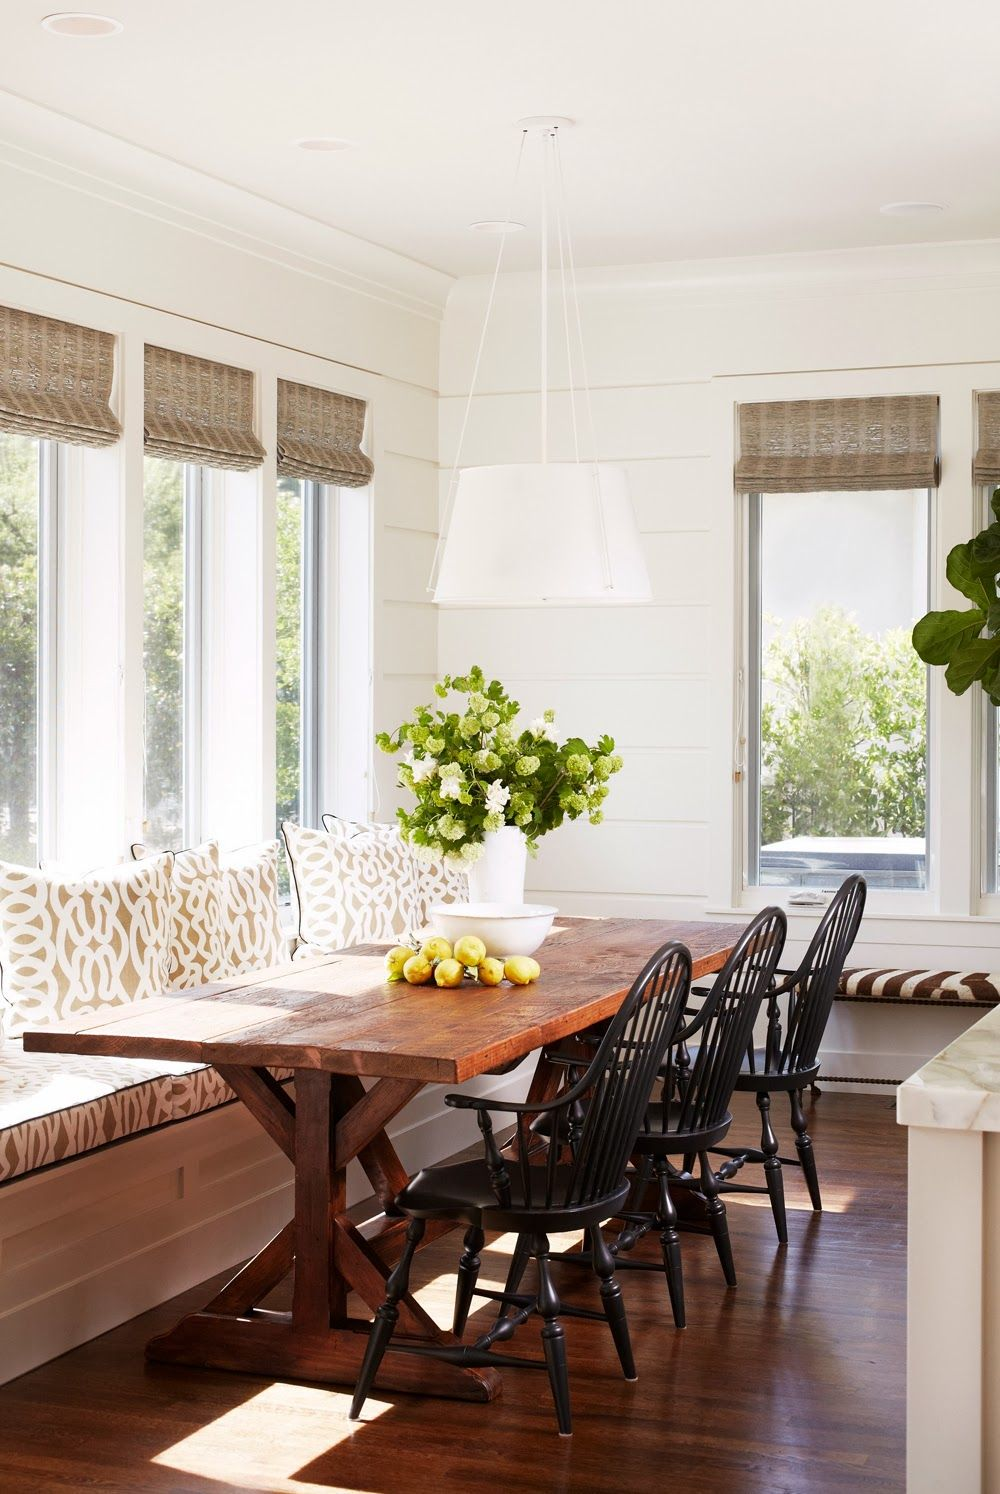 Küche interieur farbschemata breakfast room  beautiful rooms  pinterest  ideen und gute ideen